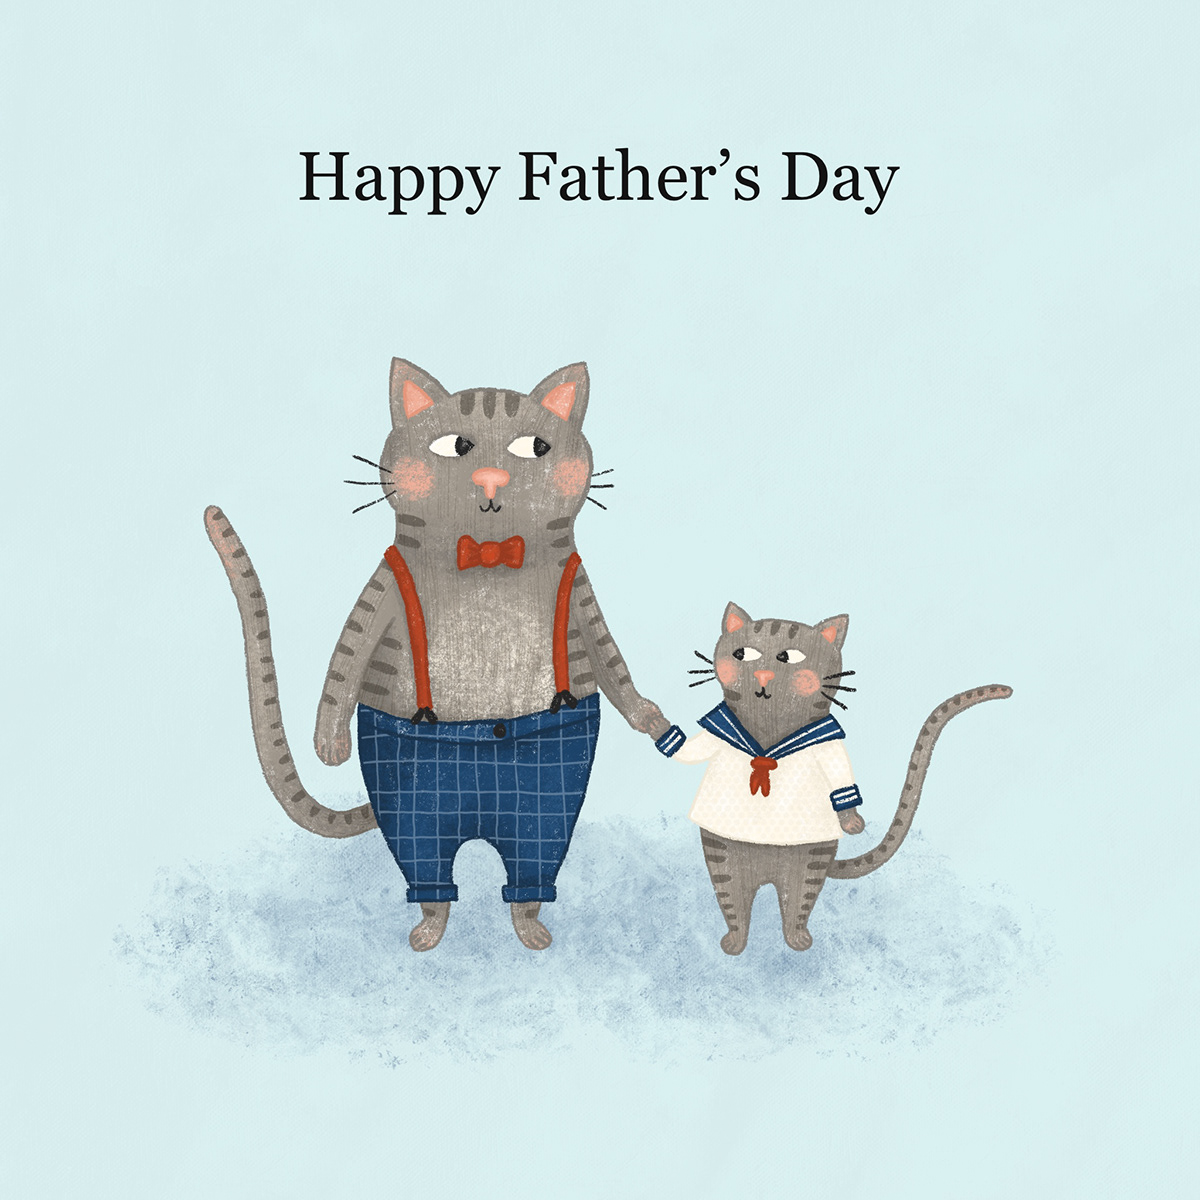 animals card design cats cute cute animals Fathers Day ILLUSTRATION  vintage